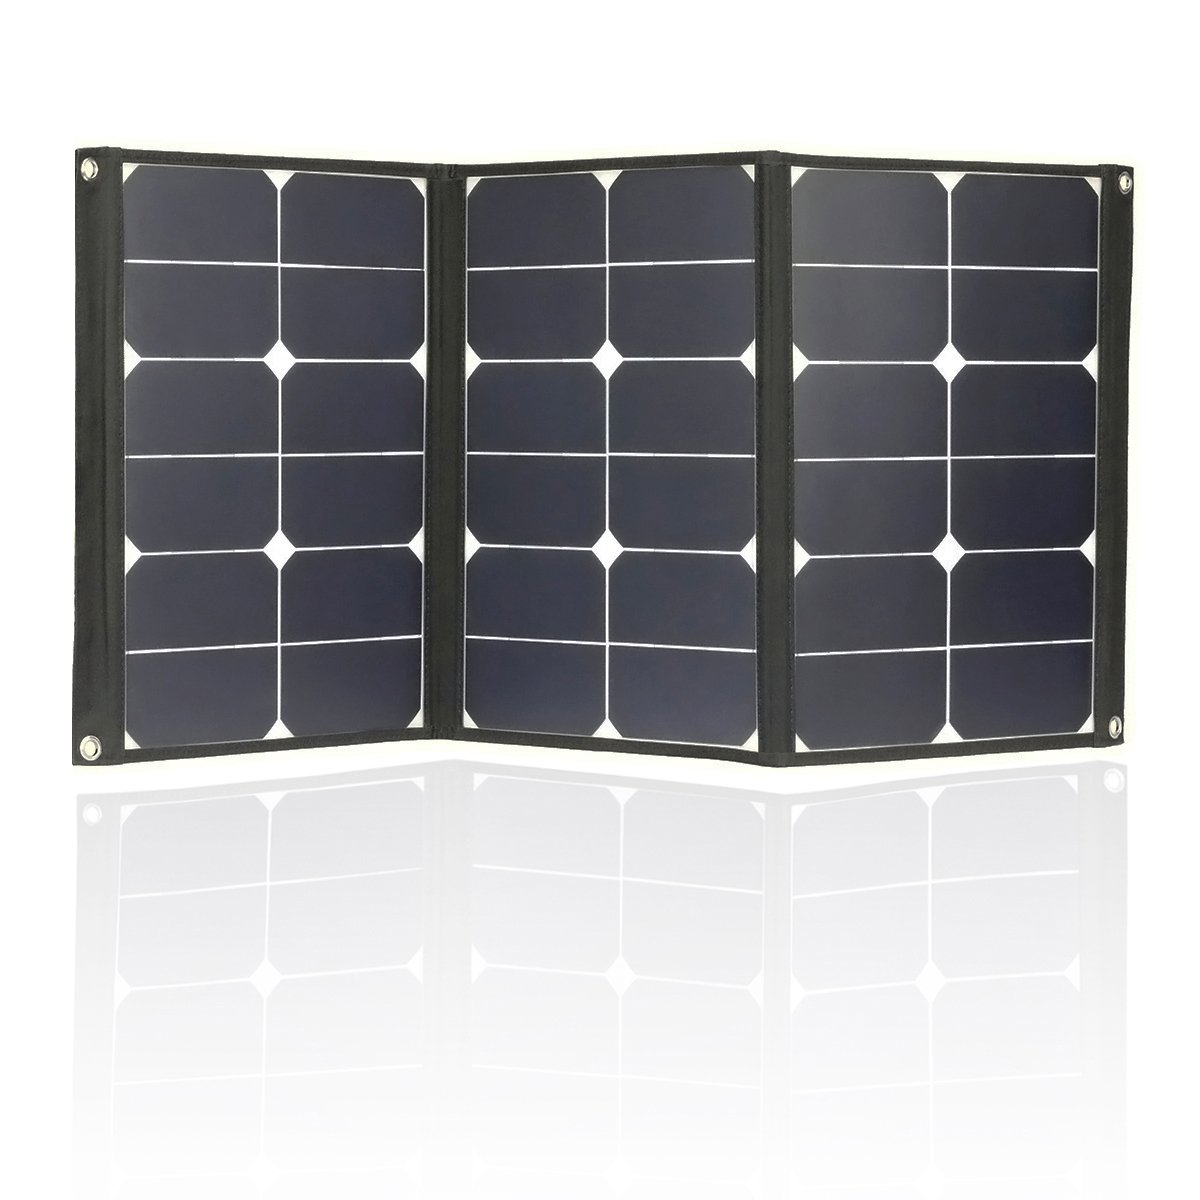 60 Watt Portable Solar Charger, Foldable Sunpower 18V 12V Solar Panel with MC4 connector and Dual-port Output (USB 5V + DC 18V) for Hiking, Camping, Solar Generator, RV, Boat, Tent